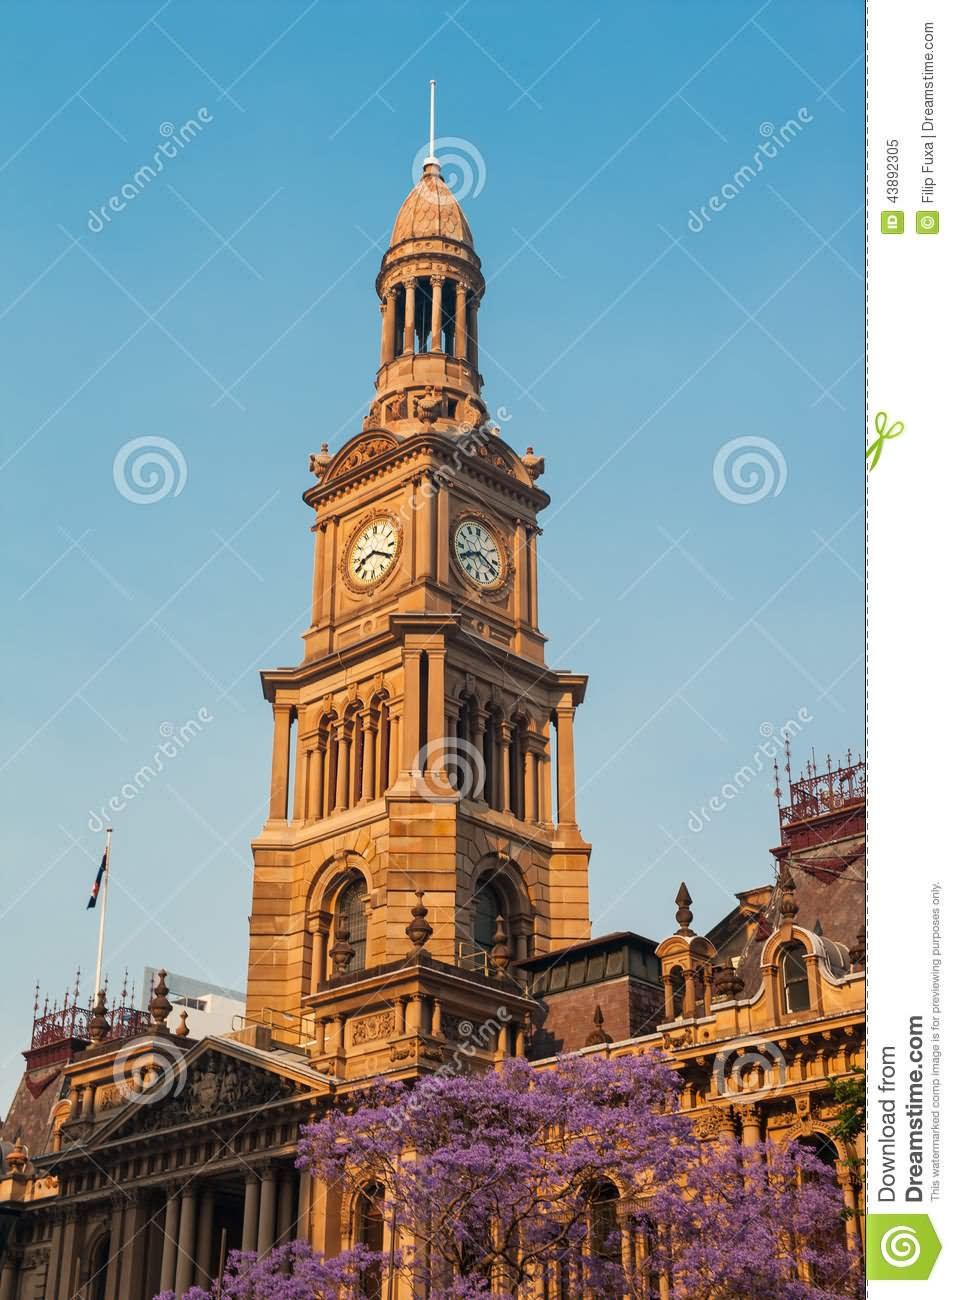 30 Best Sydney Town Hall Pictures And Photos